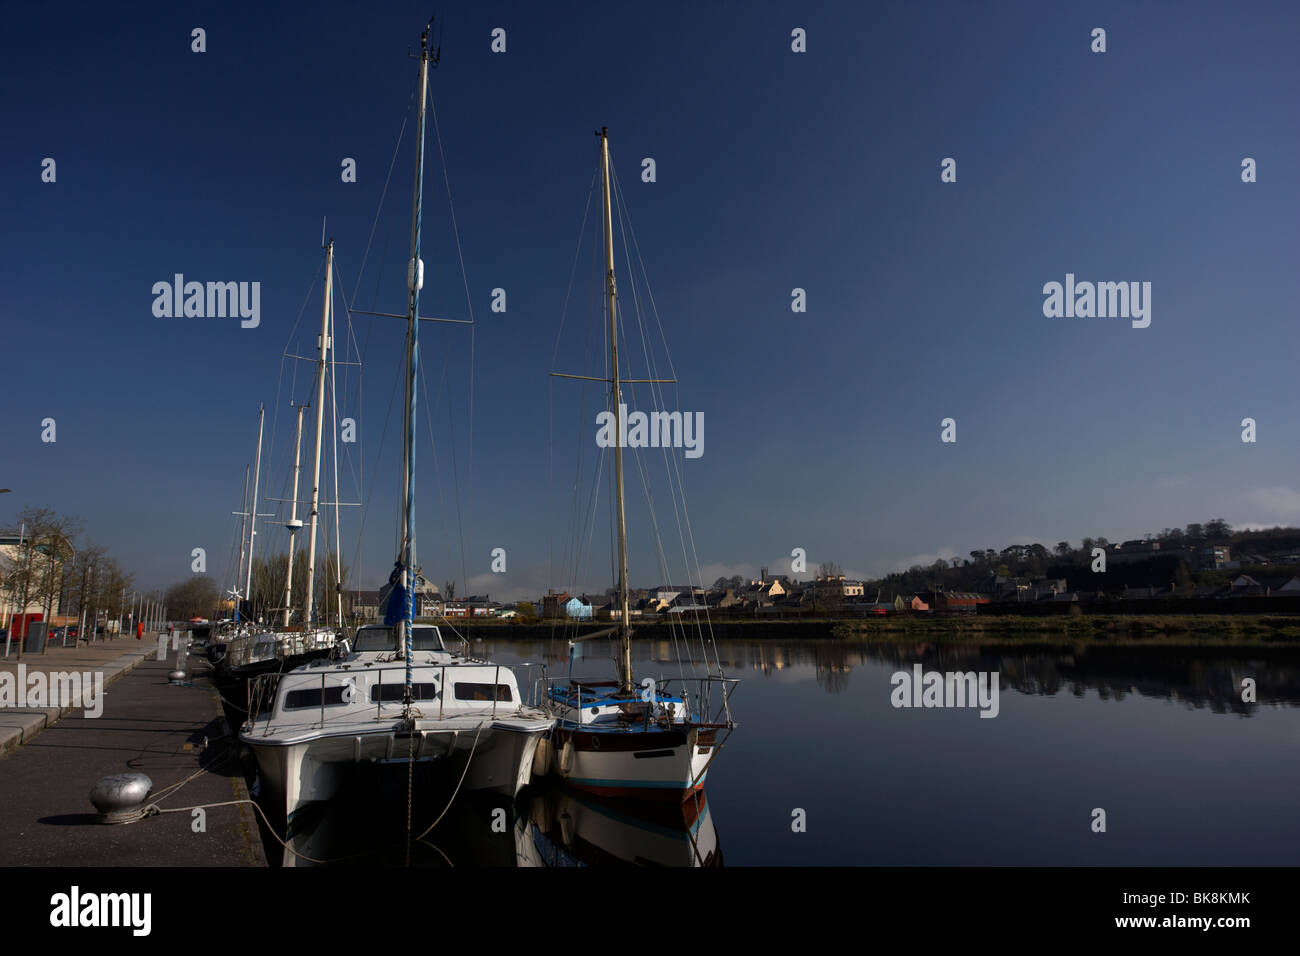 sailing boats moored at the Albert Basin on the newry canal newry county down northern ireland - Stock Image